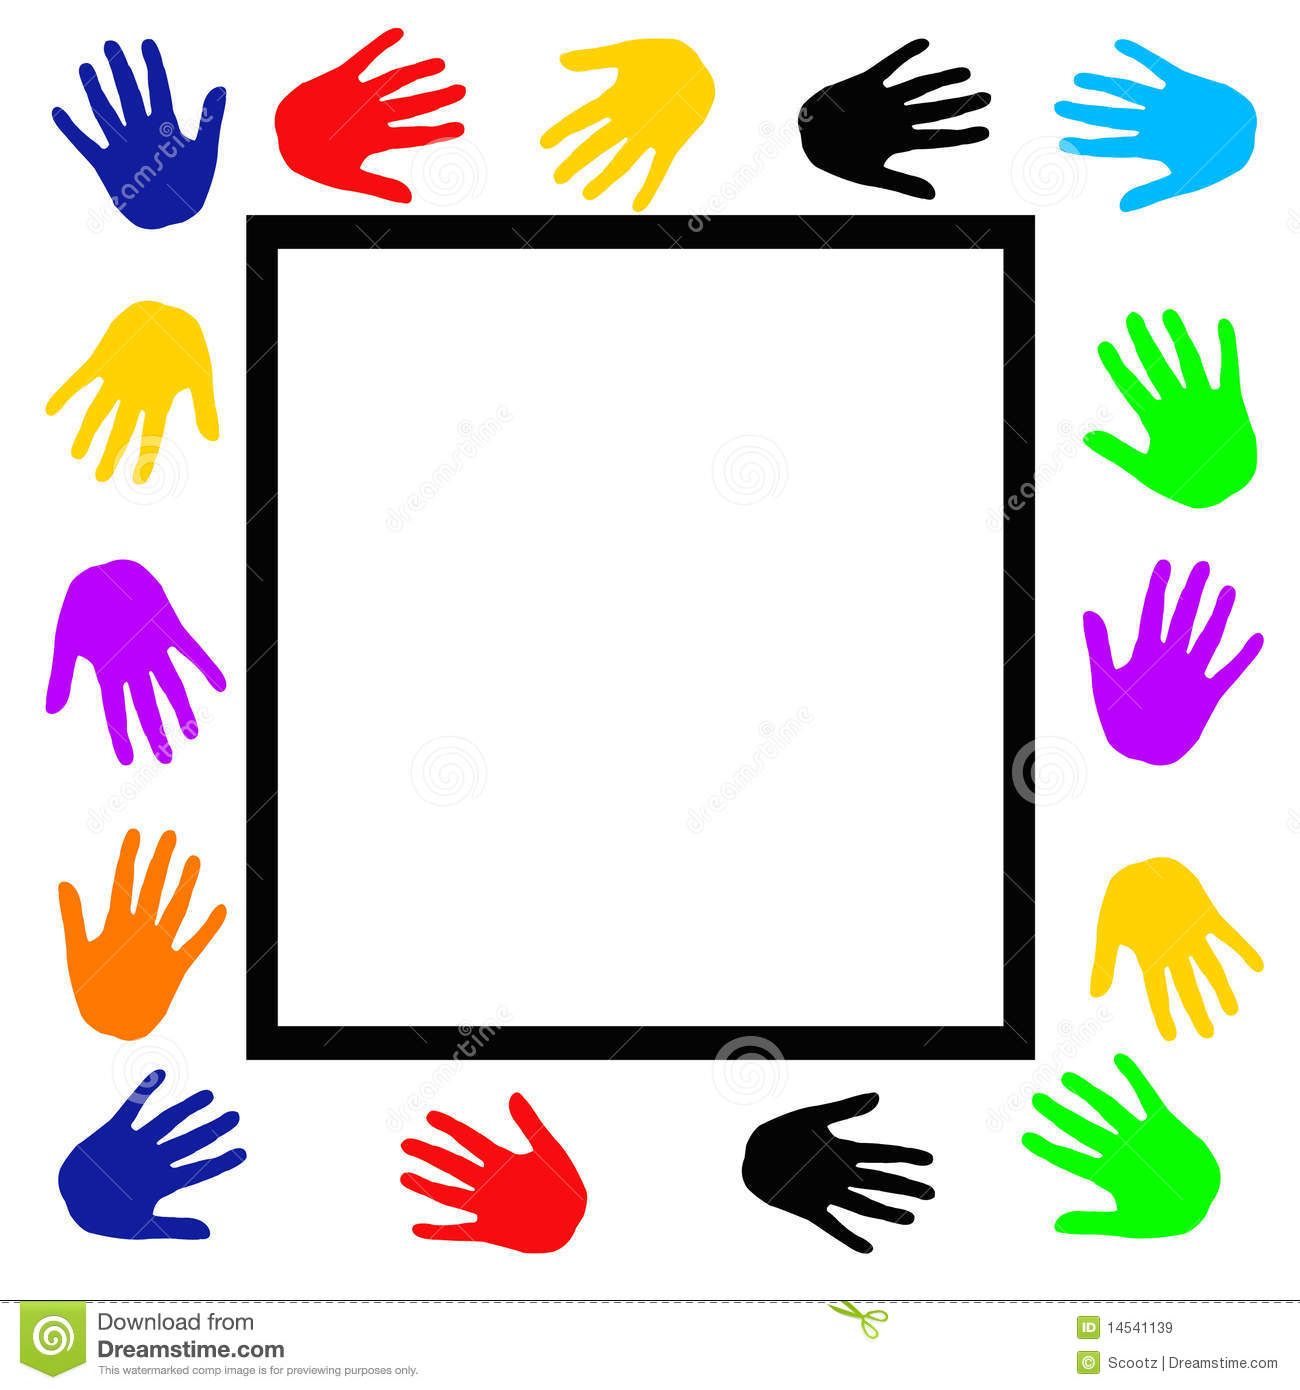 Helping Hands Border Clipart.